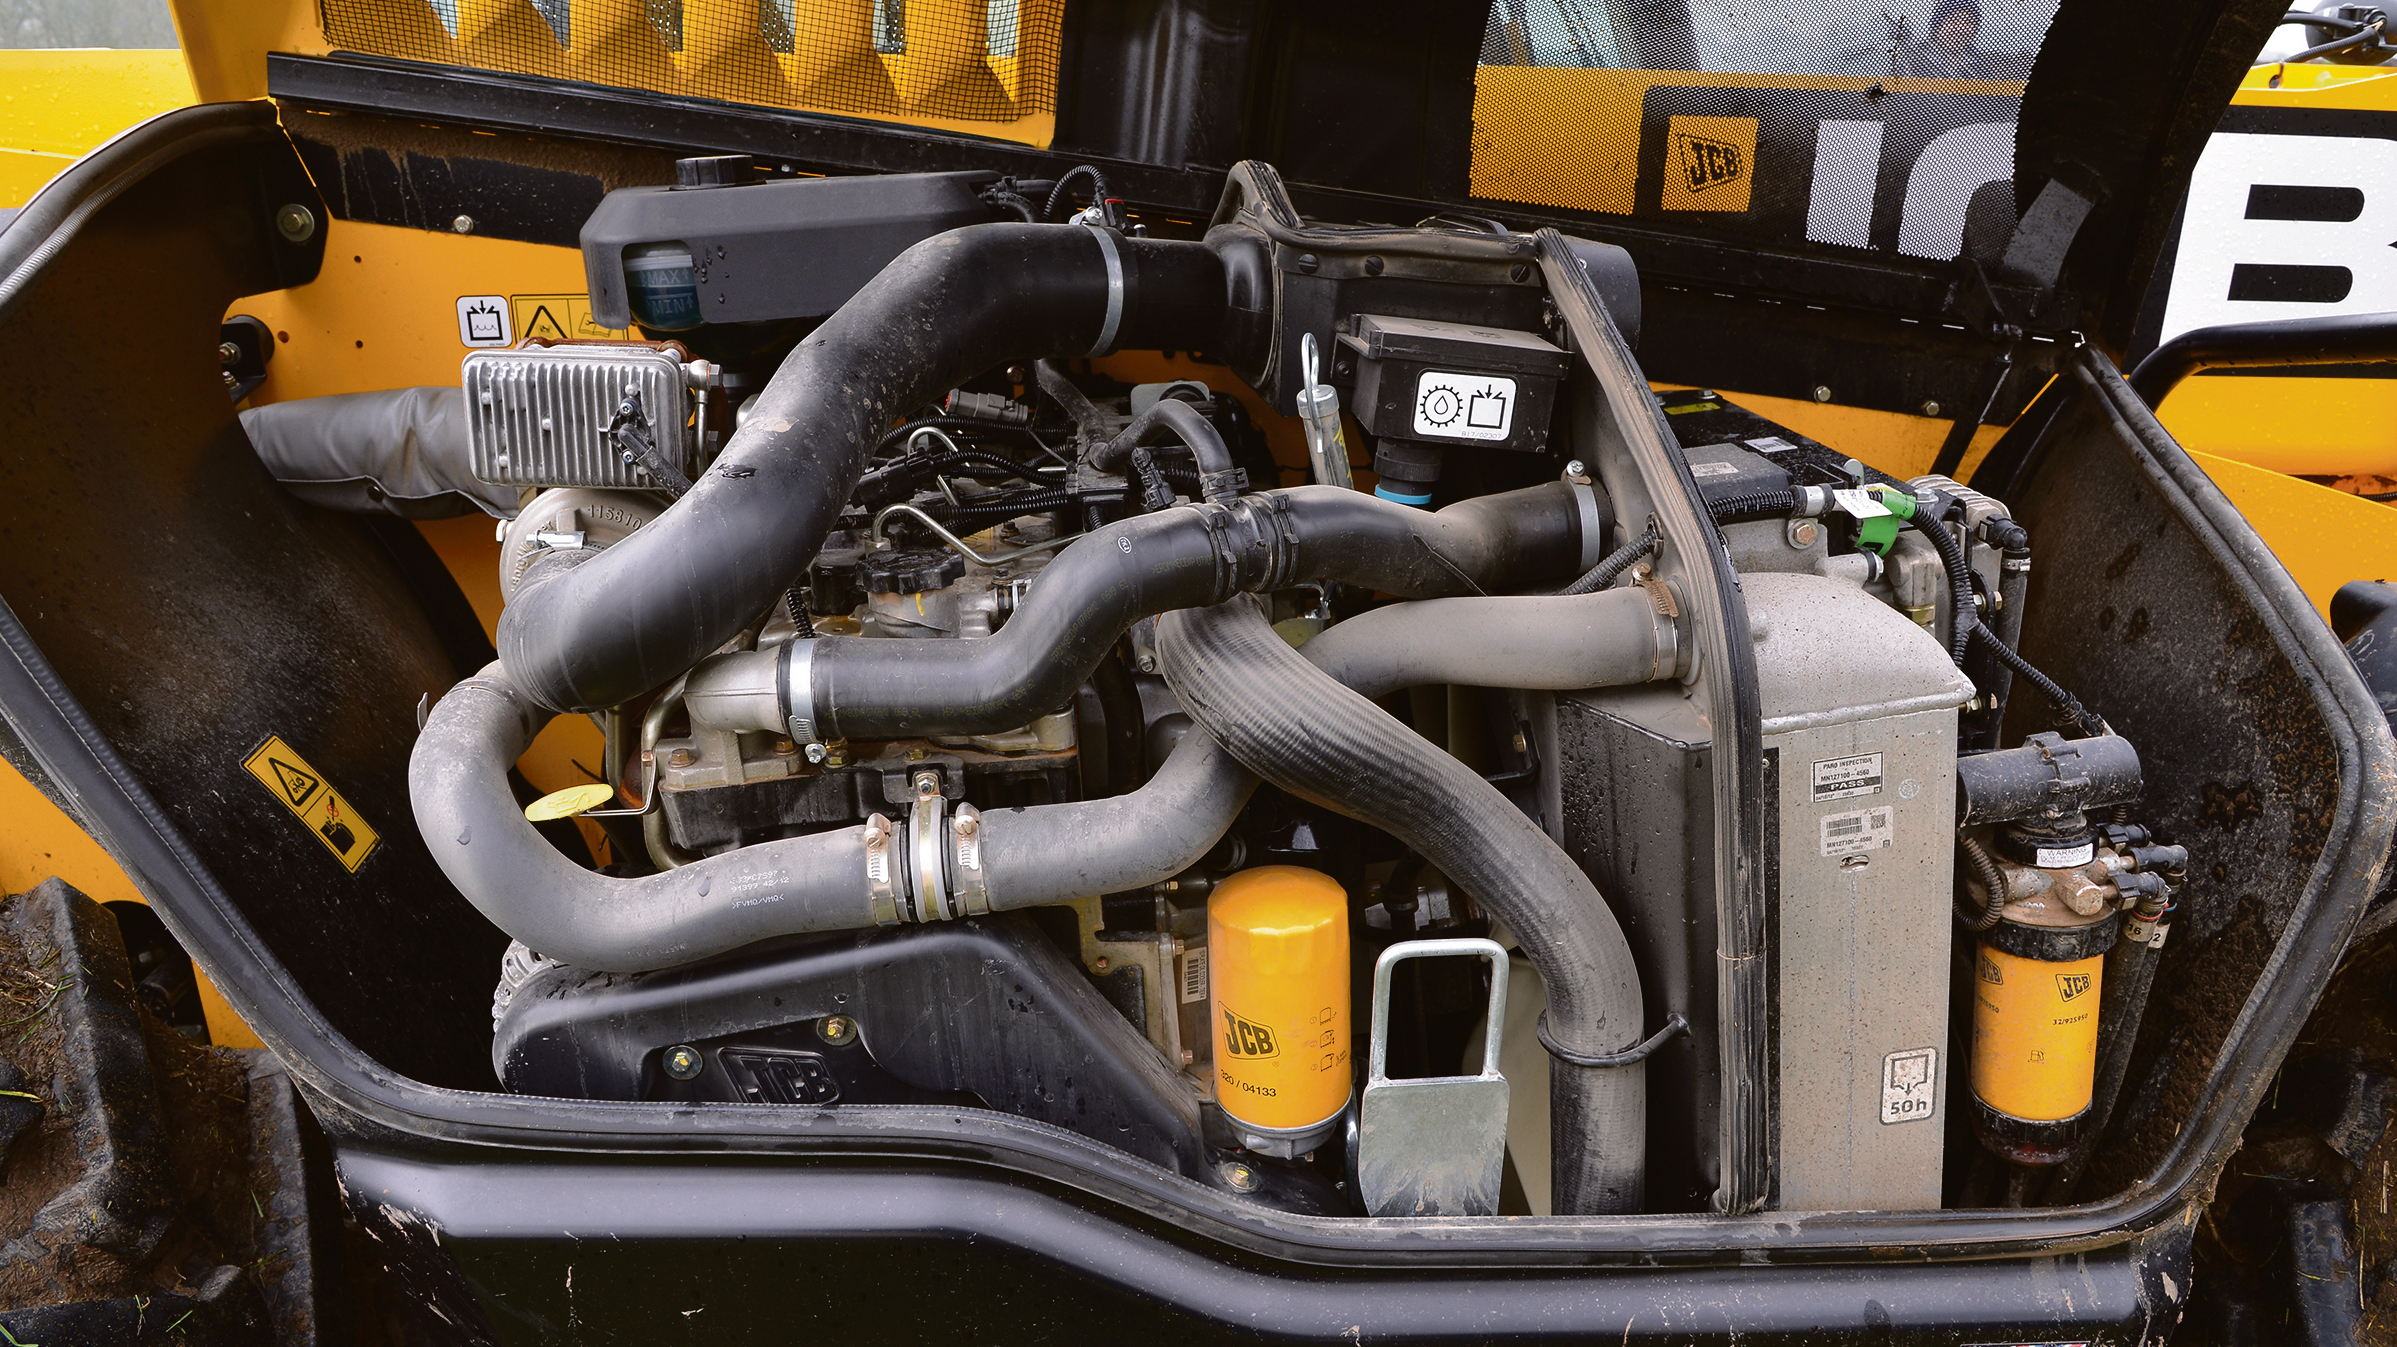 The JCB loadall engine